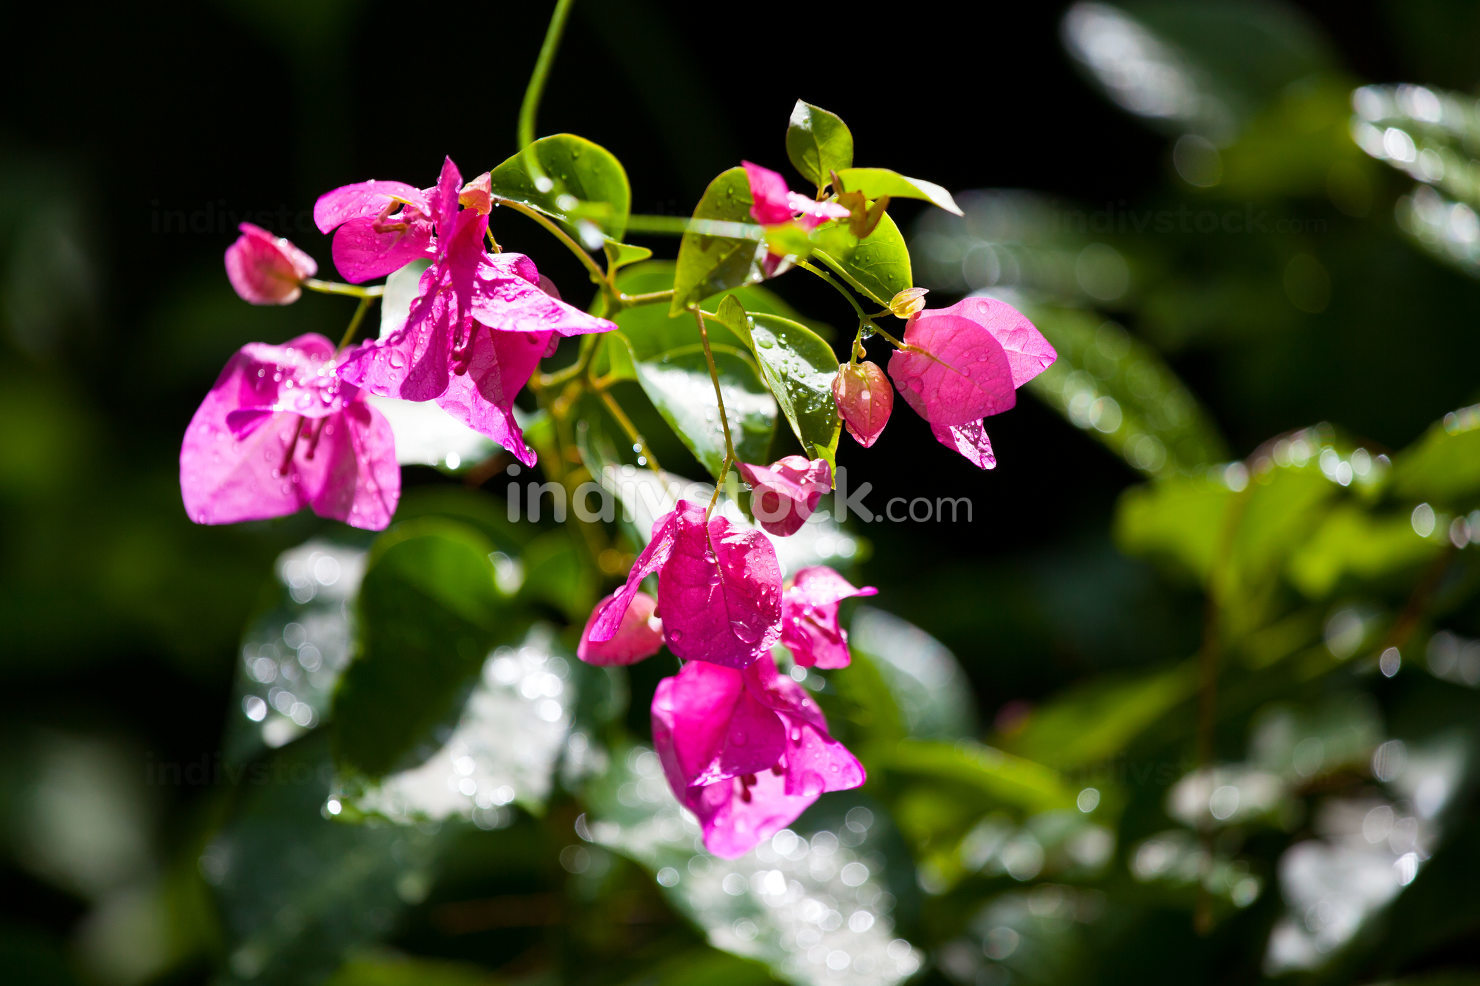 Colorful exotic flowers on trees with green leaves